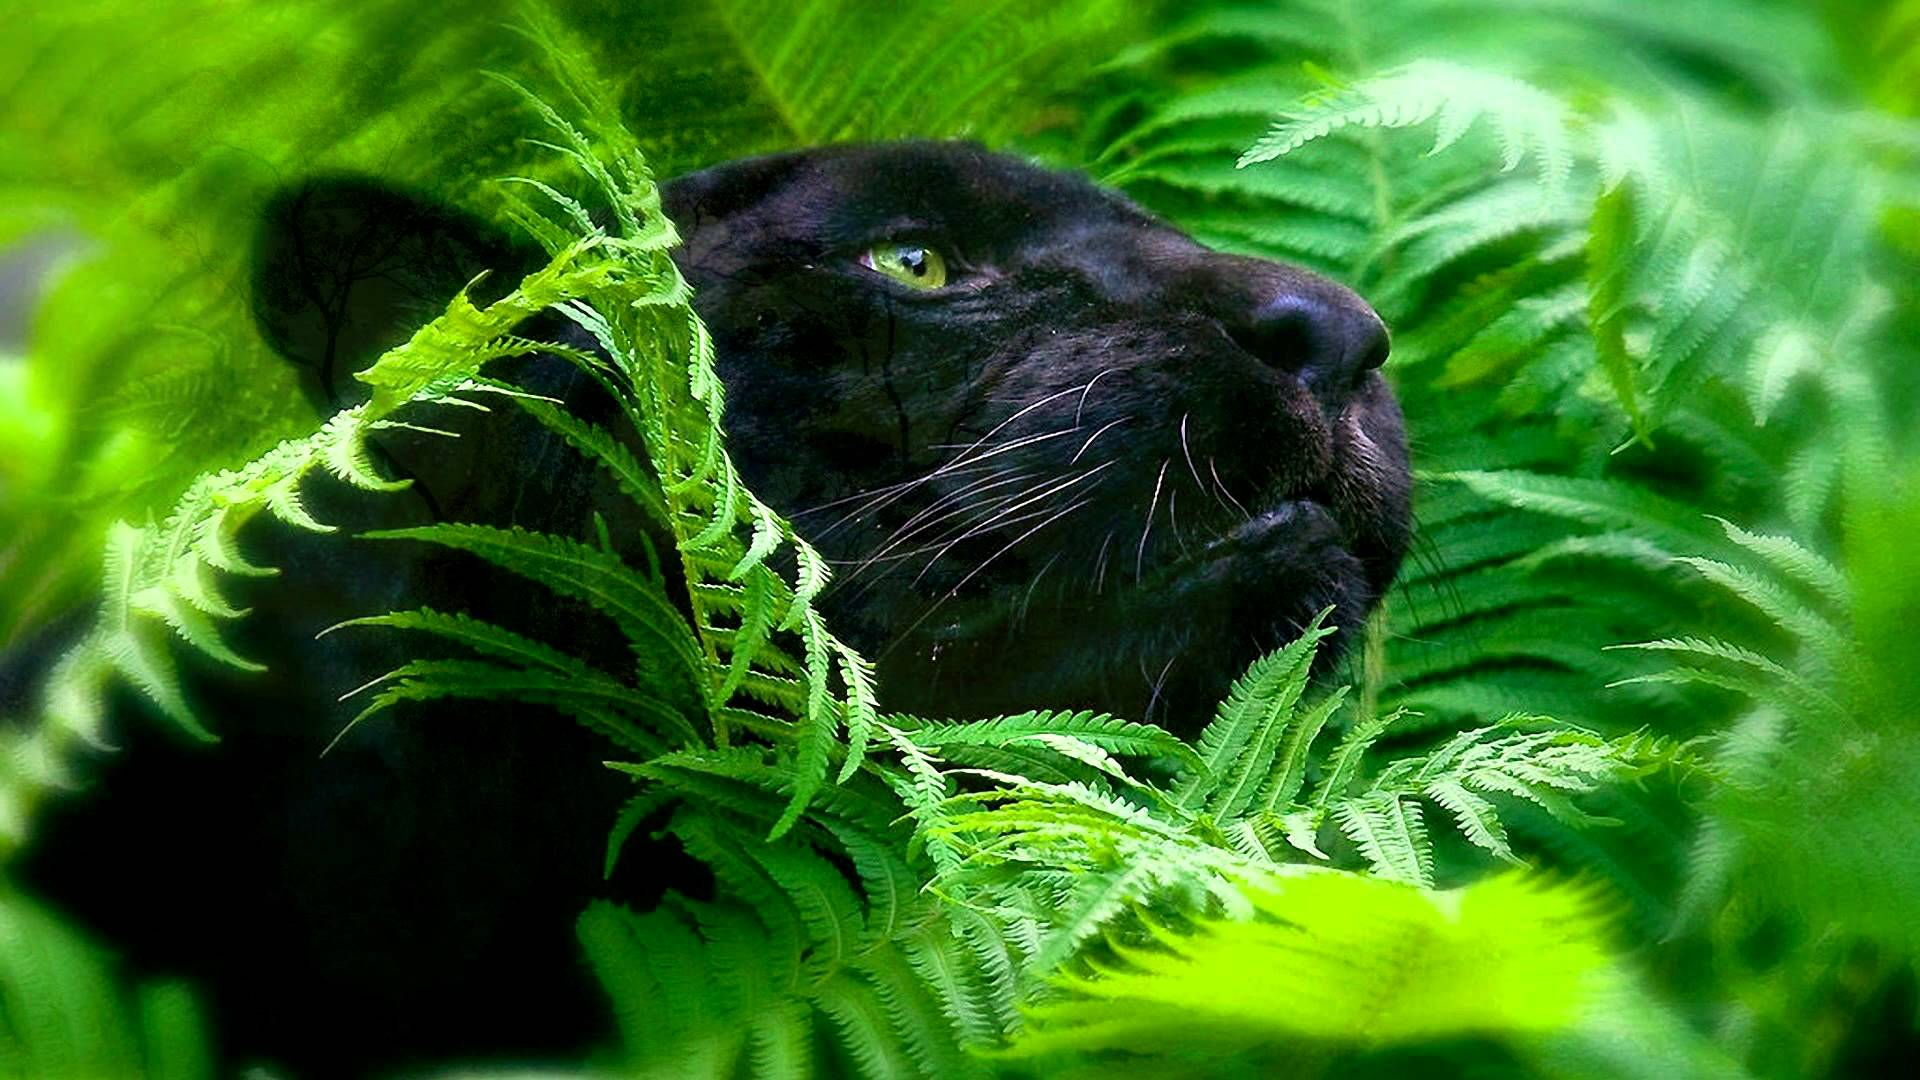 Rainforest Sounds And Animals Hour Soothing Audio For - 4k Ultra Hd Animals , HD Wallpaper & Backgrounds